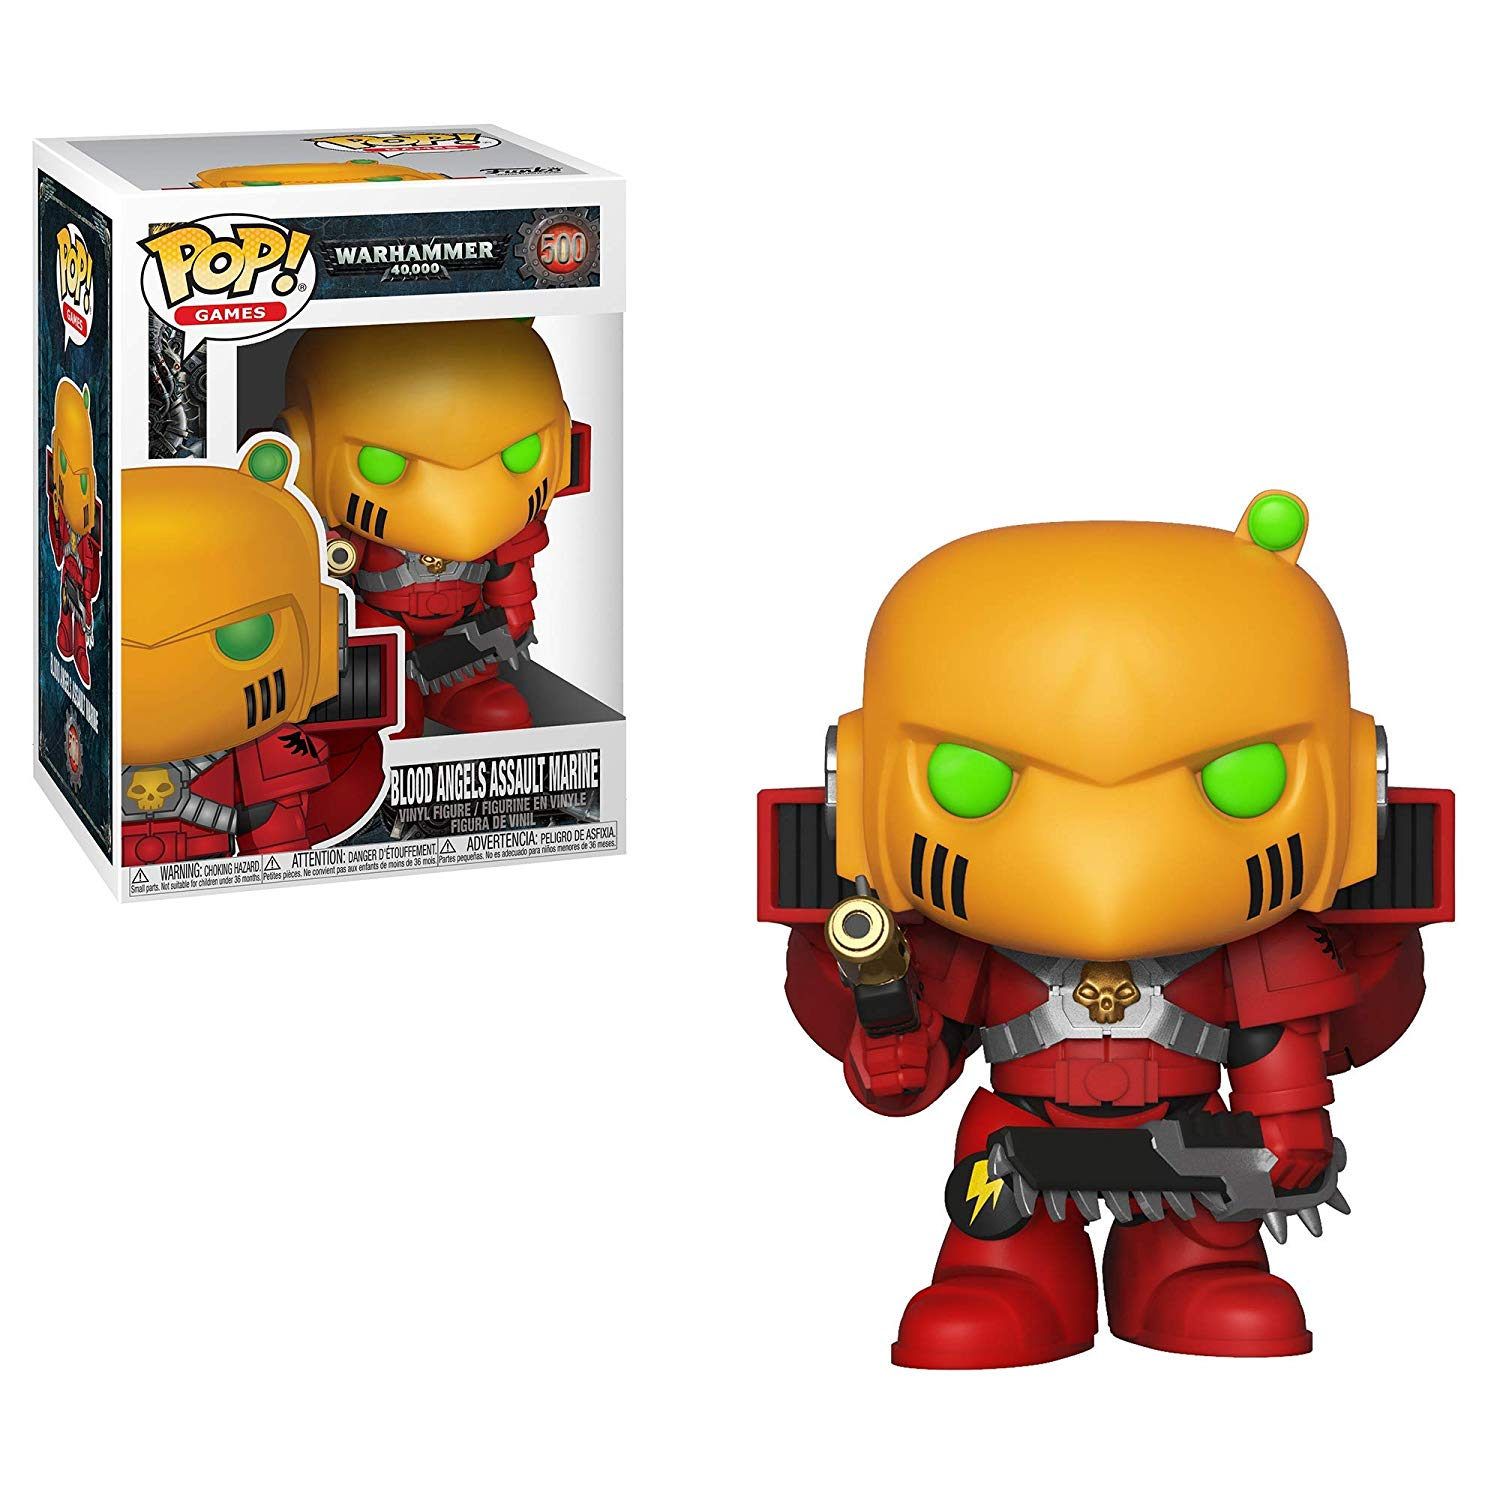 Pop! Games Warhammer 40,000 Vinyl Figure Blood Angels Assault Marine #500